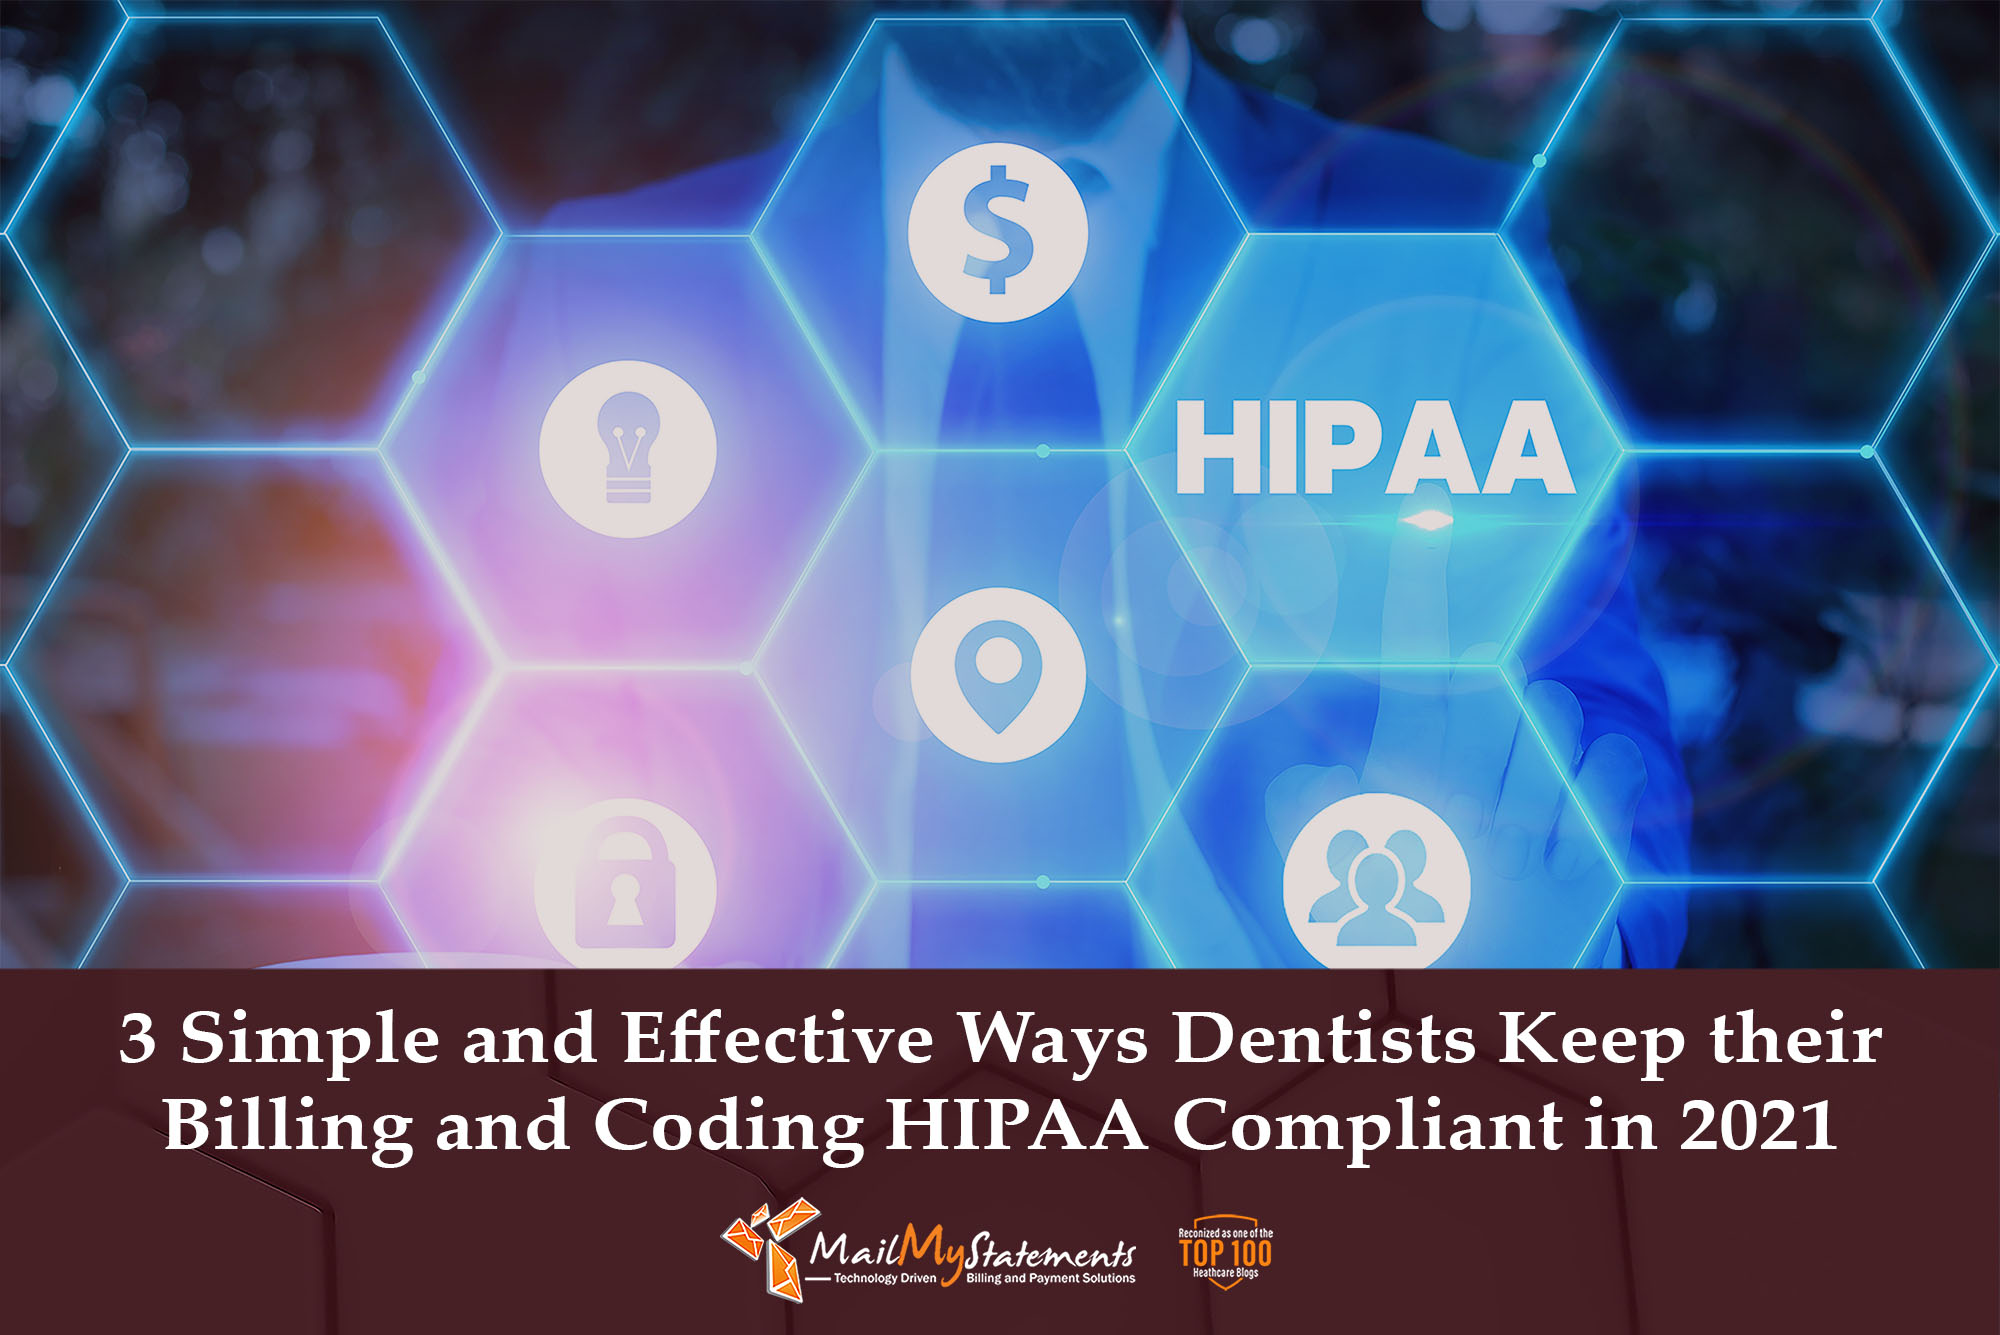 3-Simple-and-Effective-Ways-Dentists-Keep-their-Billing-and-Coding-HIPAA-Comlpiant-Guest-Blog